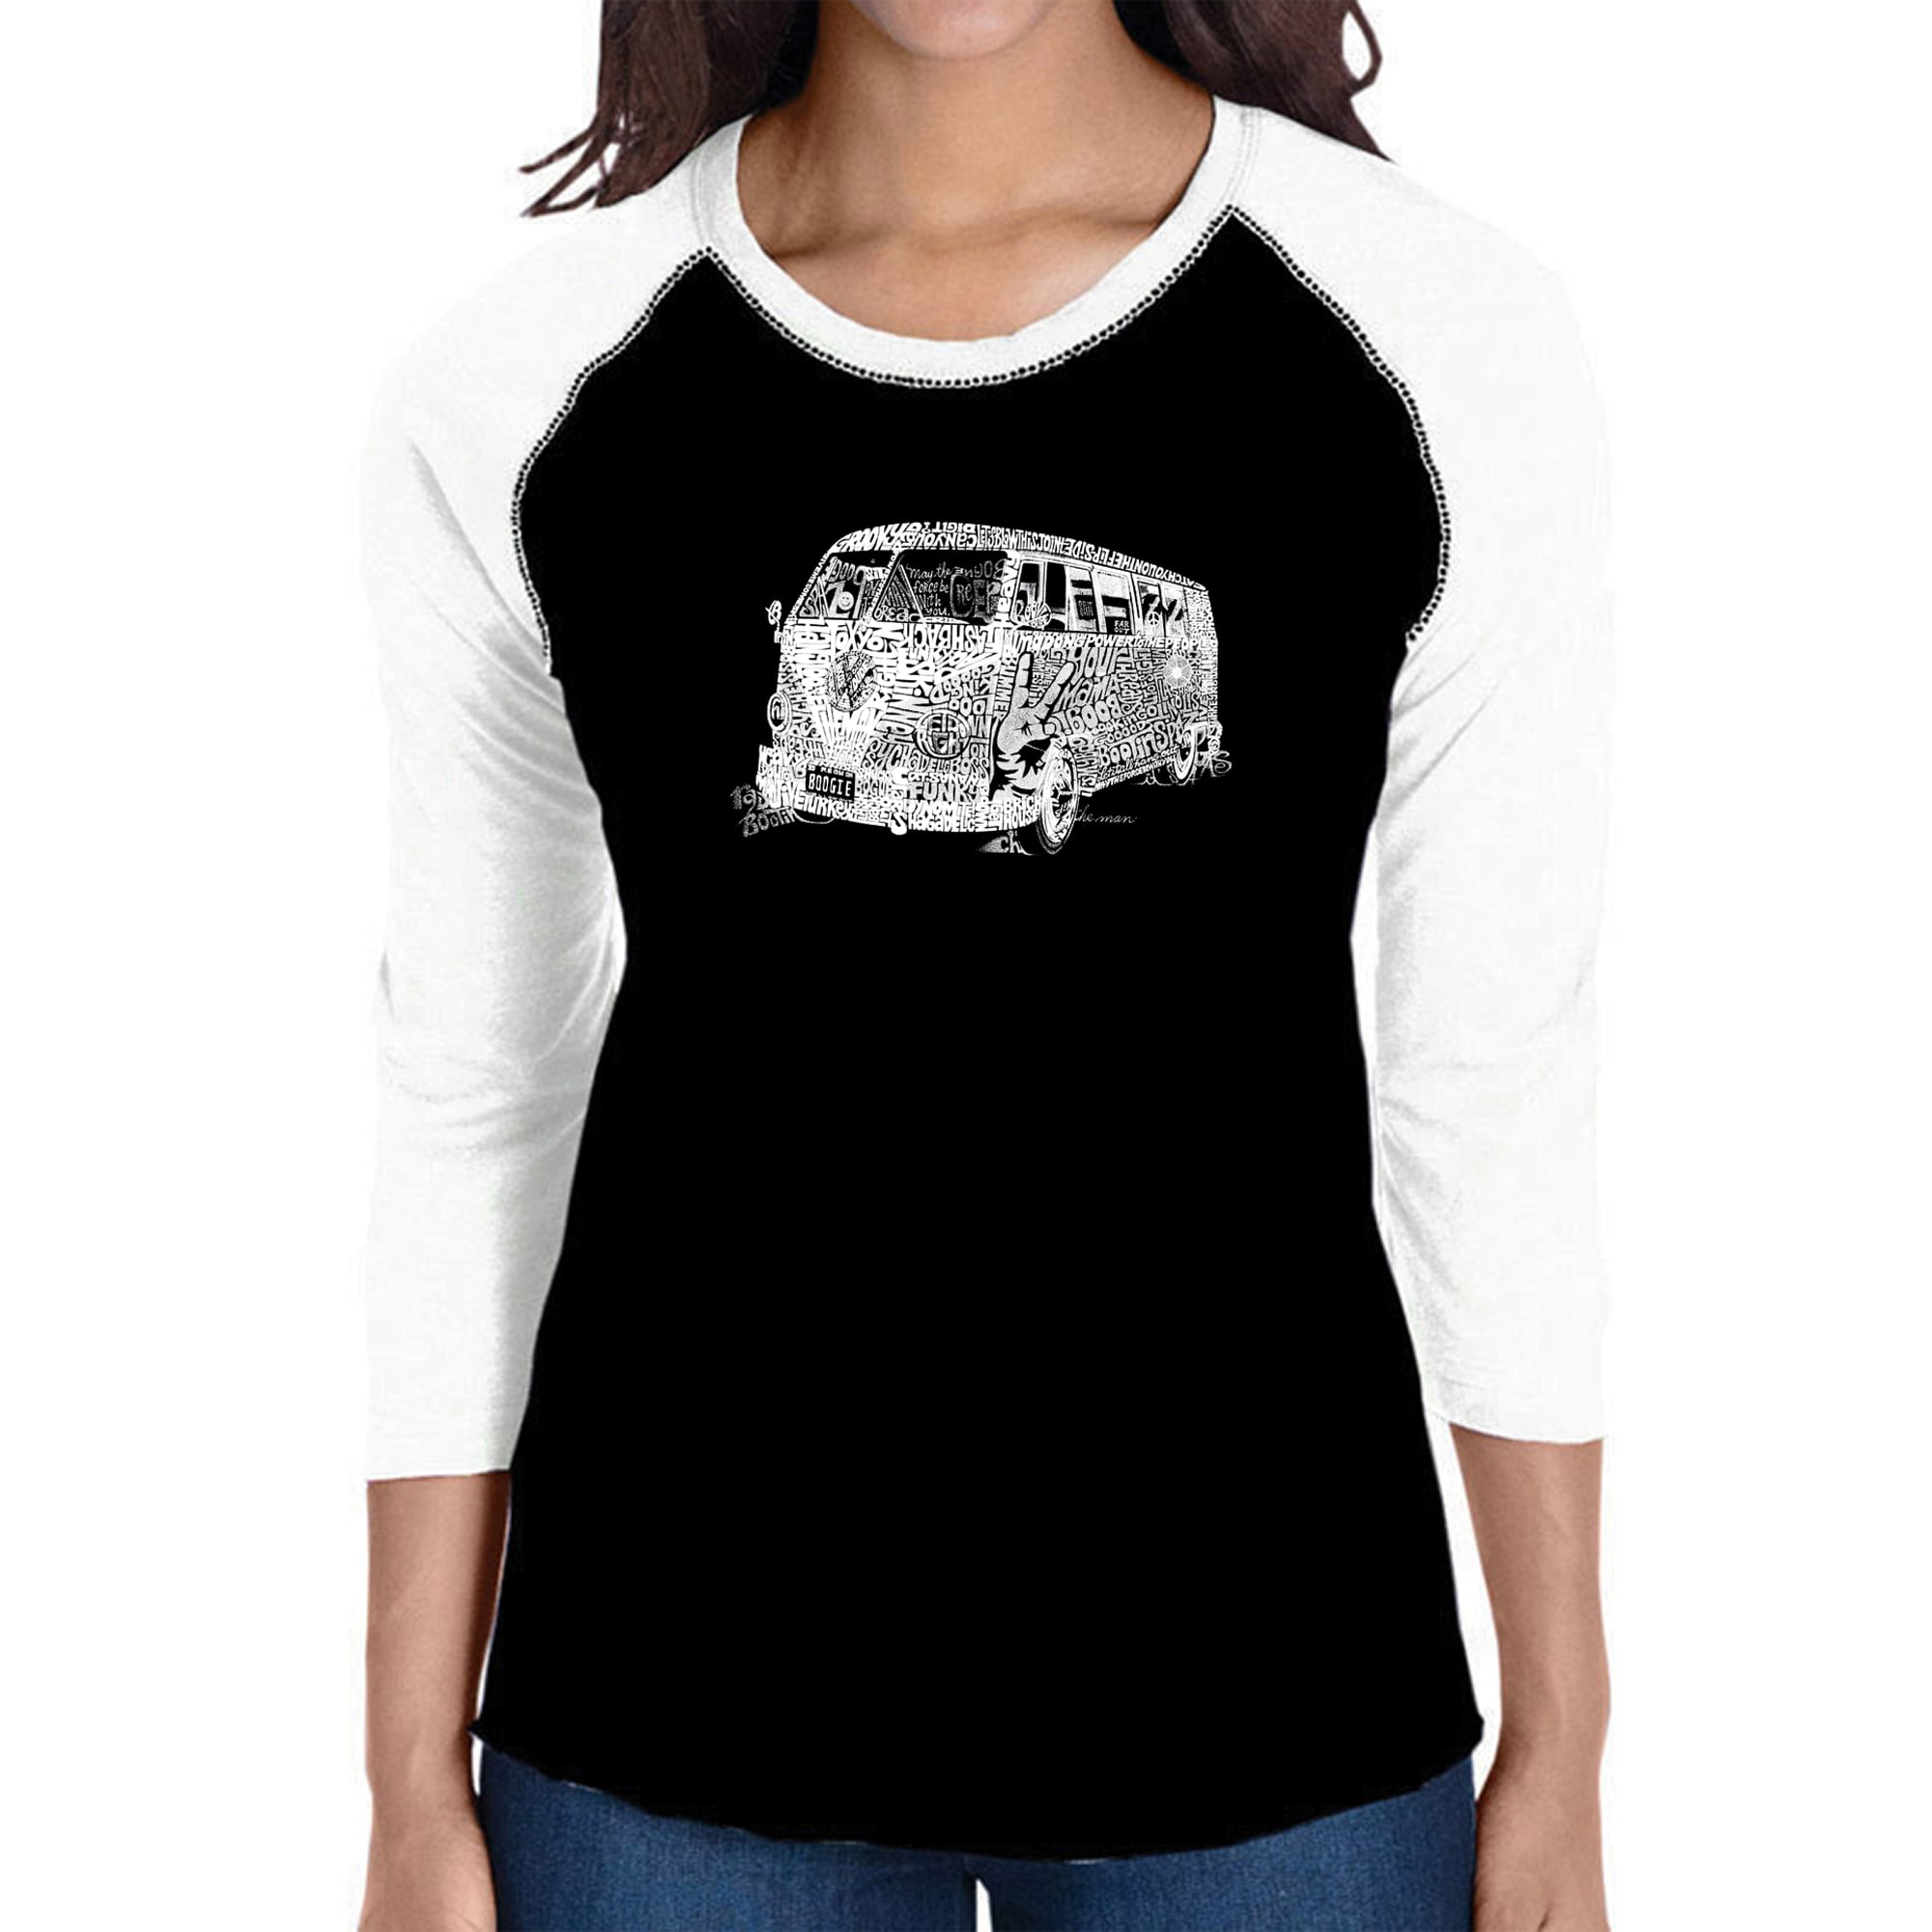 Made in The 70s Seventies Retro Raglan Baseball Tee Shirt